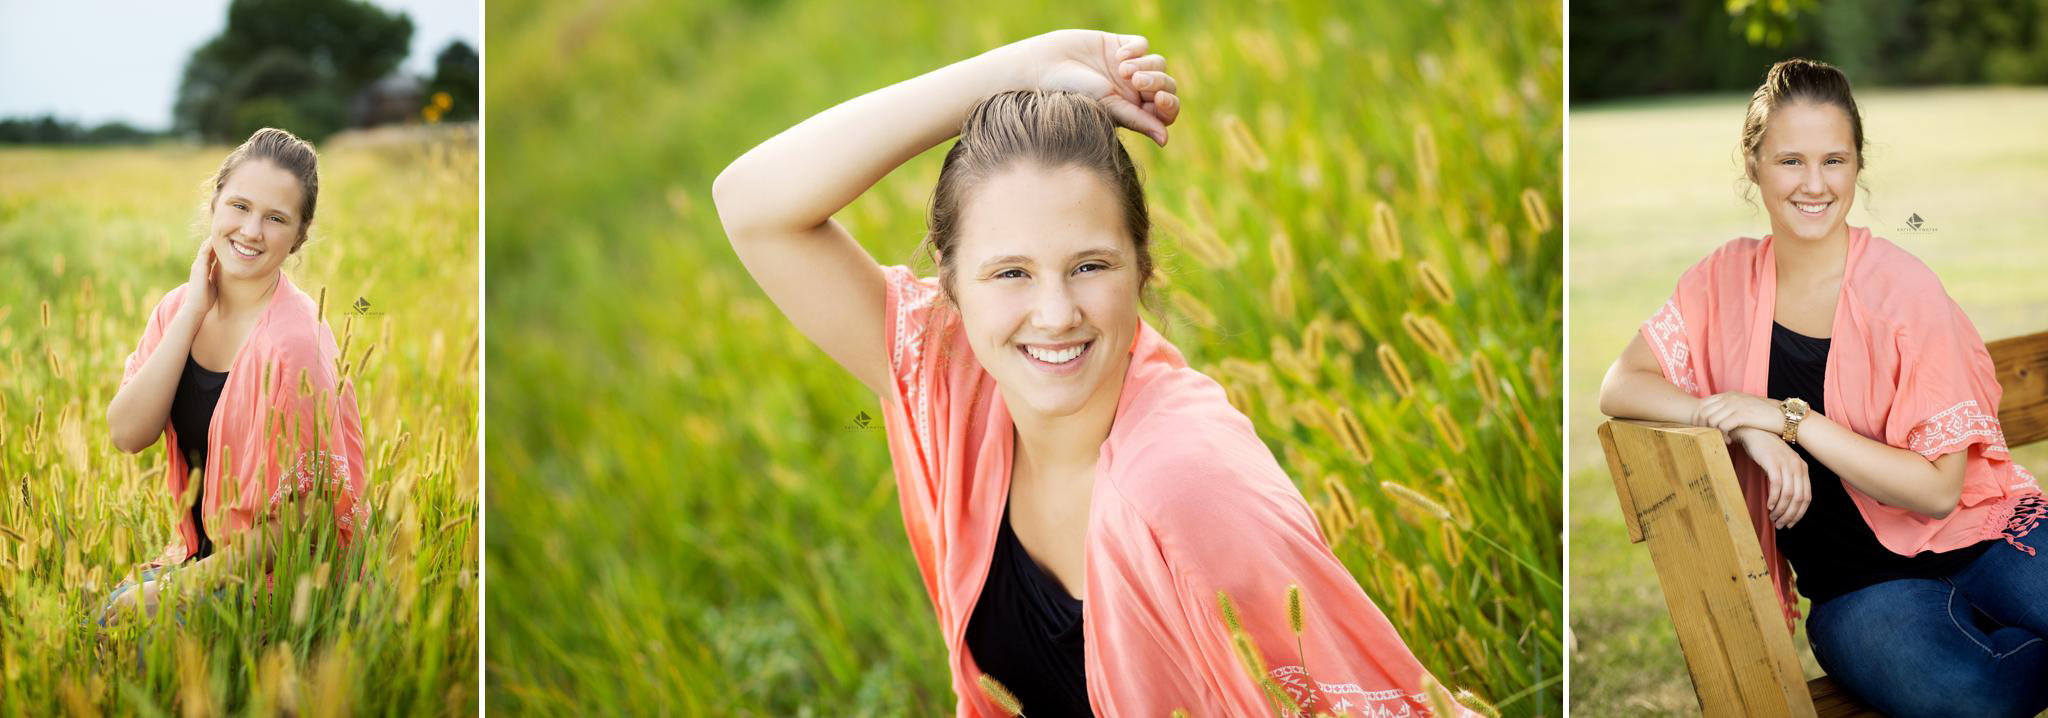 Country Senior by Katie Swatek Photography | Natural Senior by Katie Swatek Photography